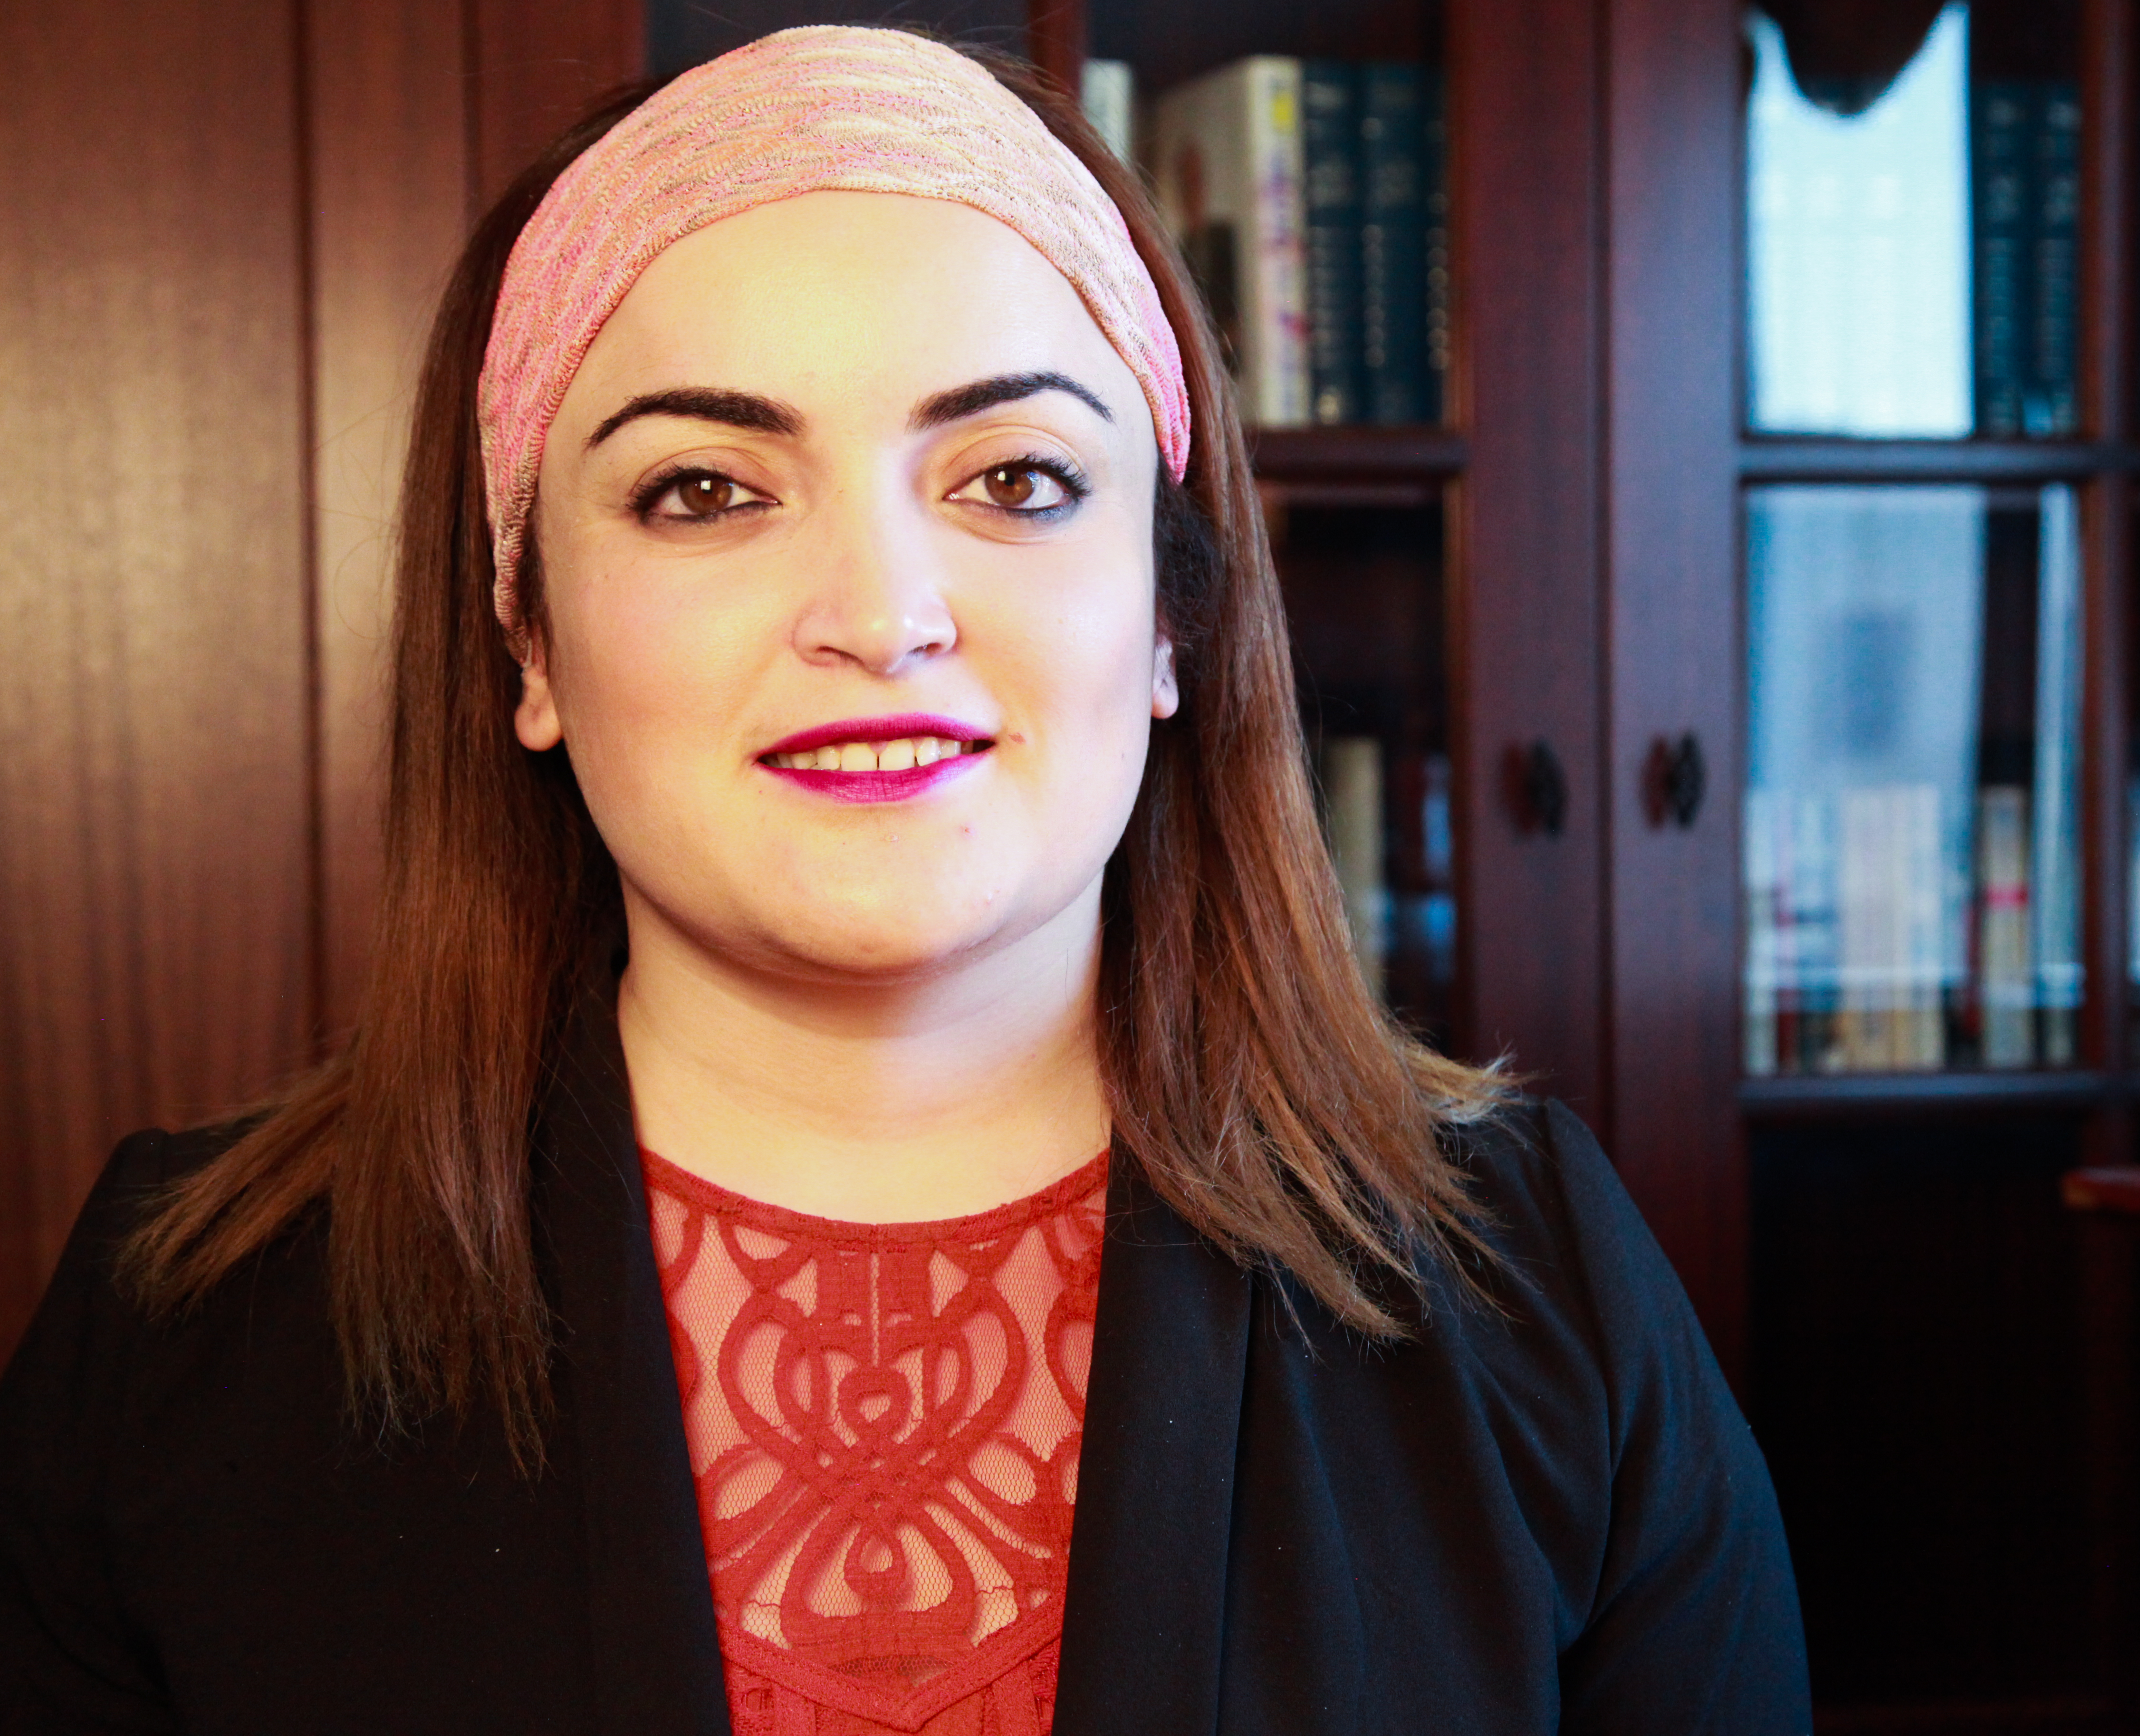 Headshot photo of Ahlem Nasraoui